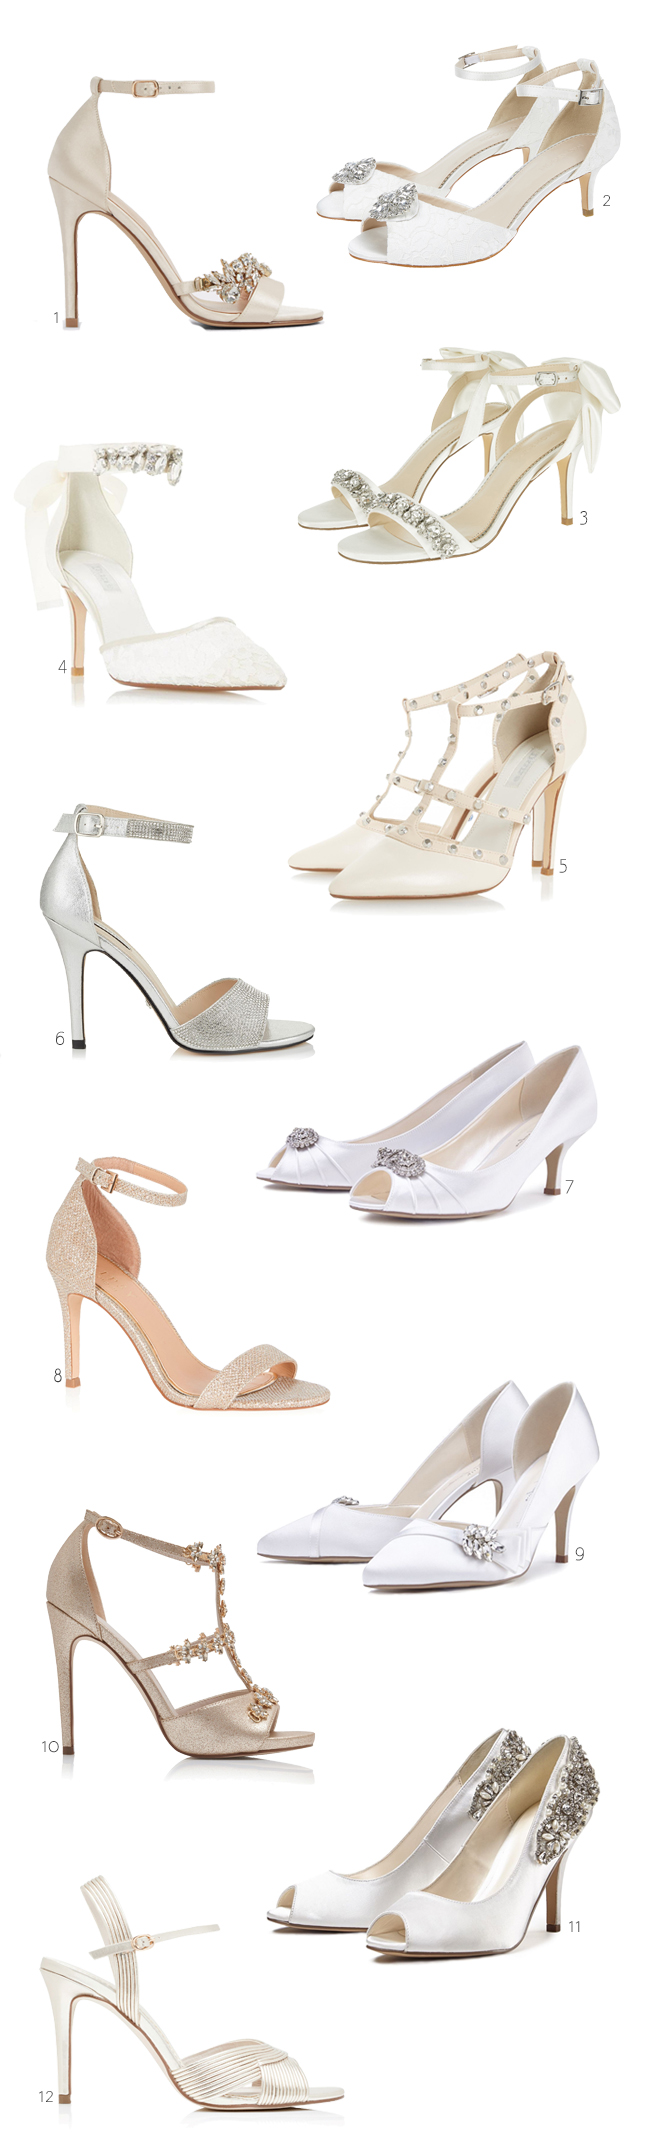 12 Stunning Wedding Shoes Under €100 images 0